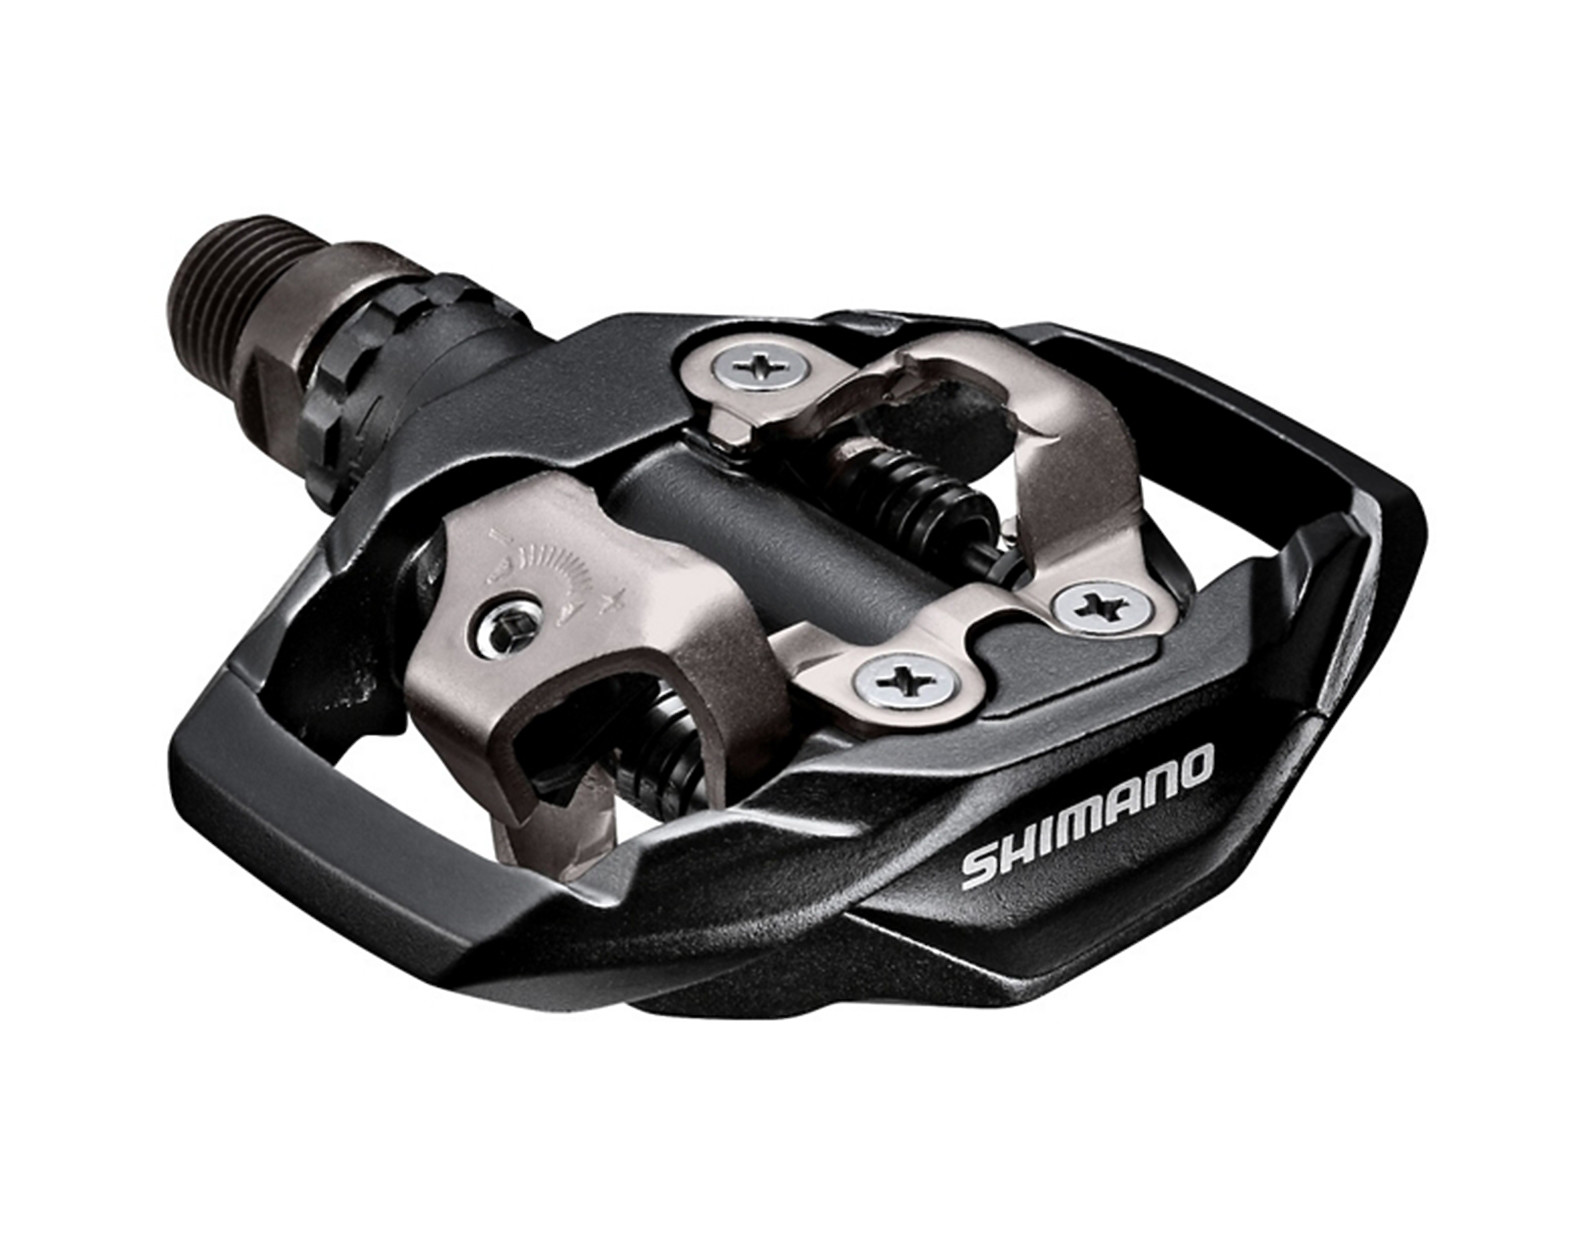 Time Ritchey Look XC Crank Bros Egg Beaters 4 x SPD pedal cleat bolts Shimano